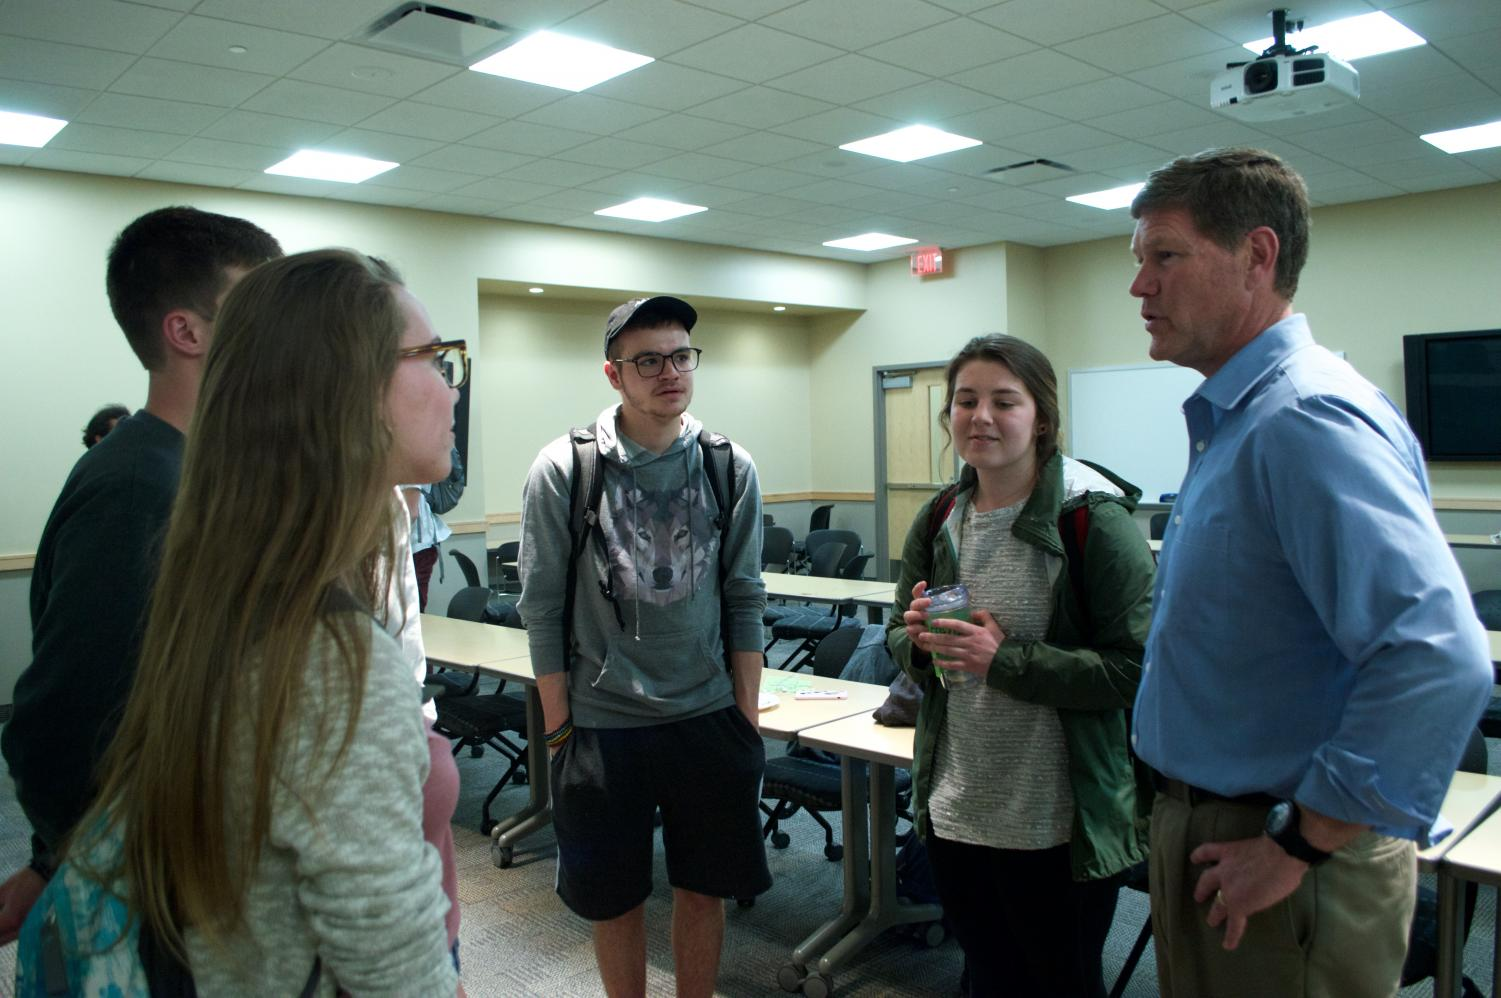 Congressman Ron Kind talking with UWL students at the event on April 25. Photo by Carly Rundle-Borchert.